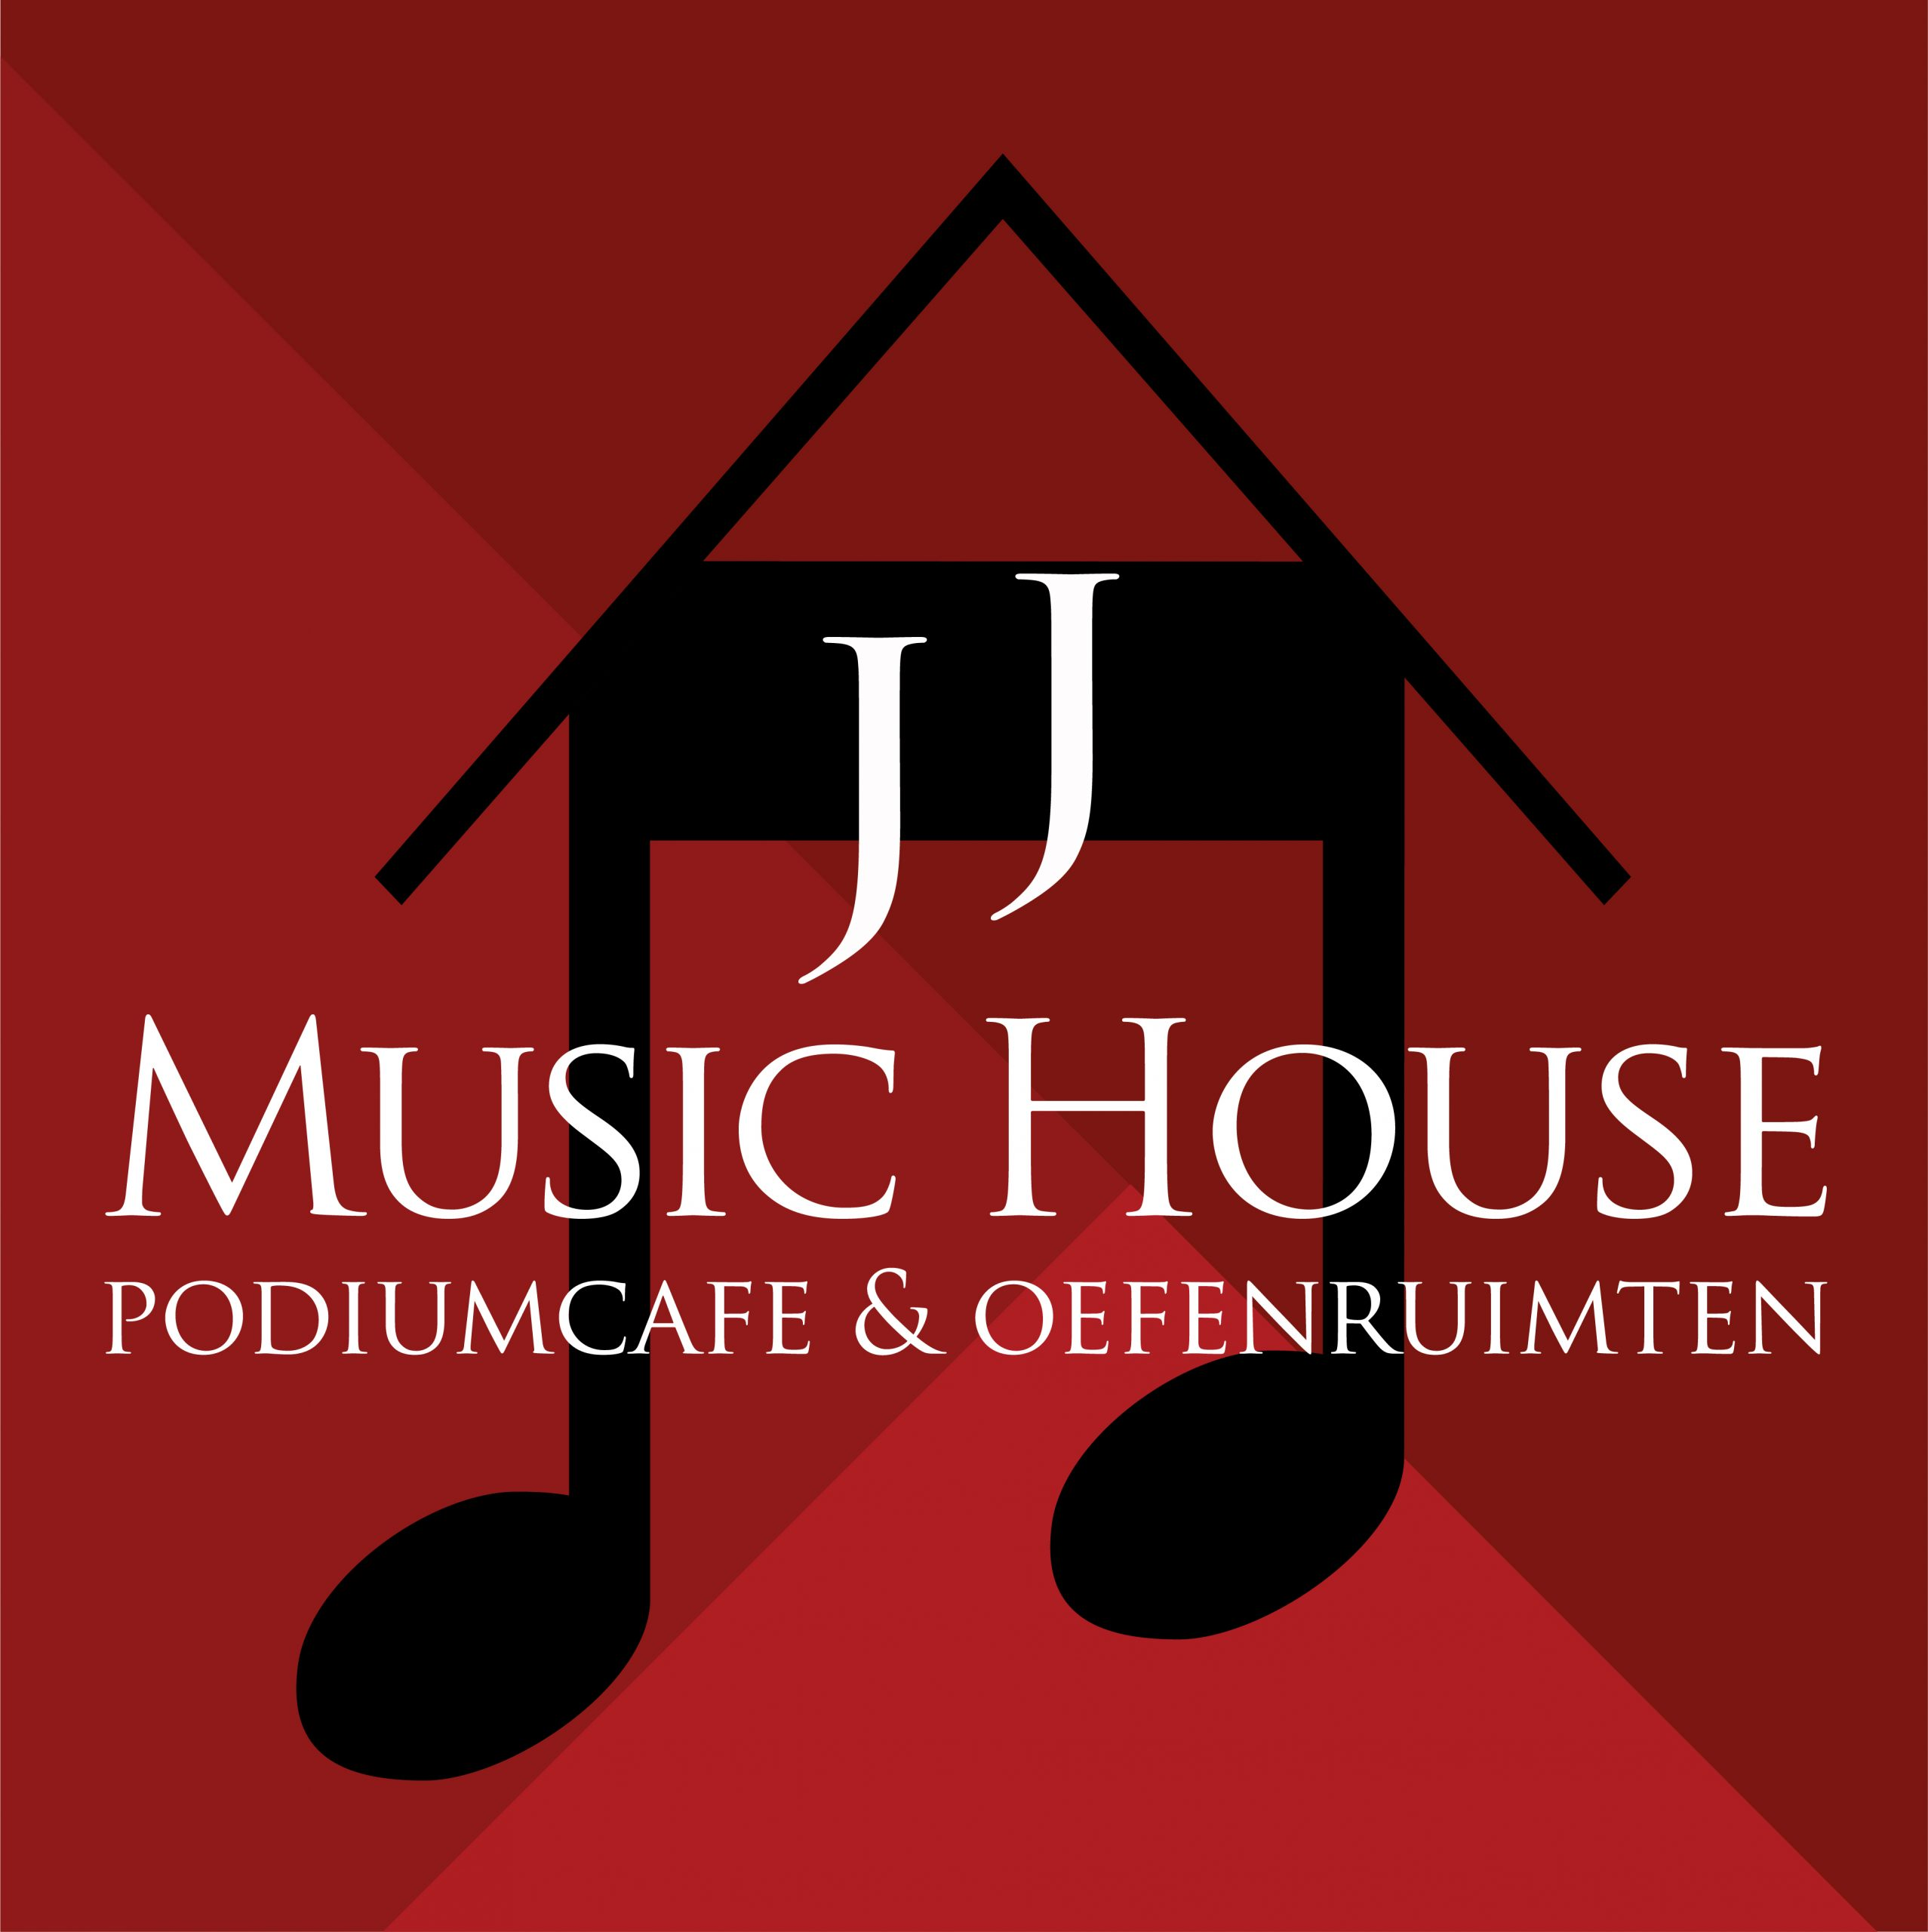 JJ Music House